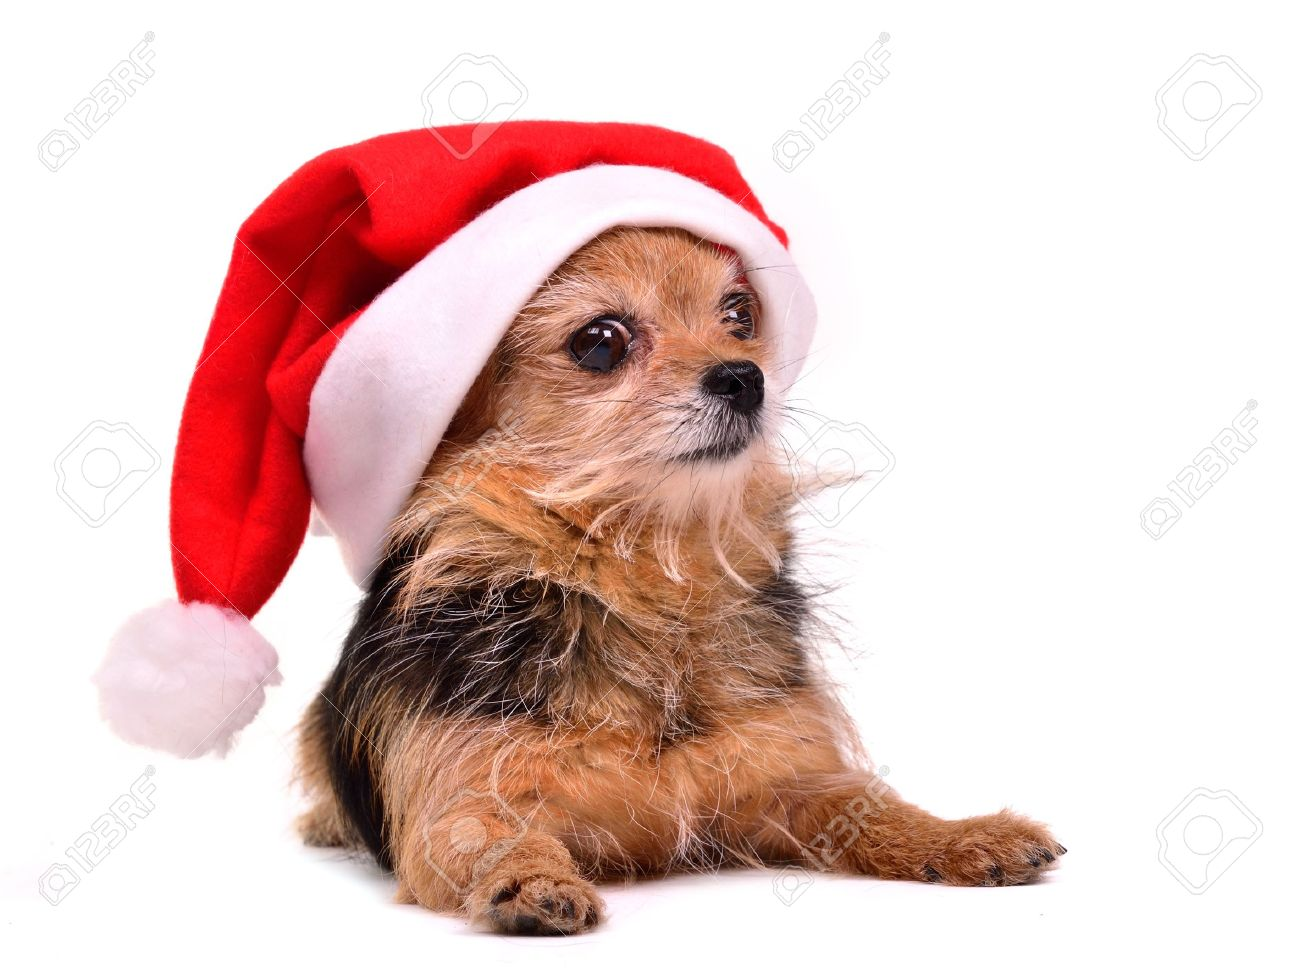 7a92f018a89d3 Christmas Dog Wearing Red Santa Hat